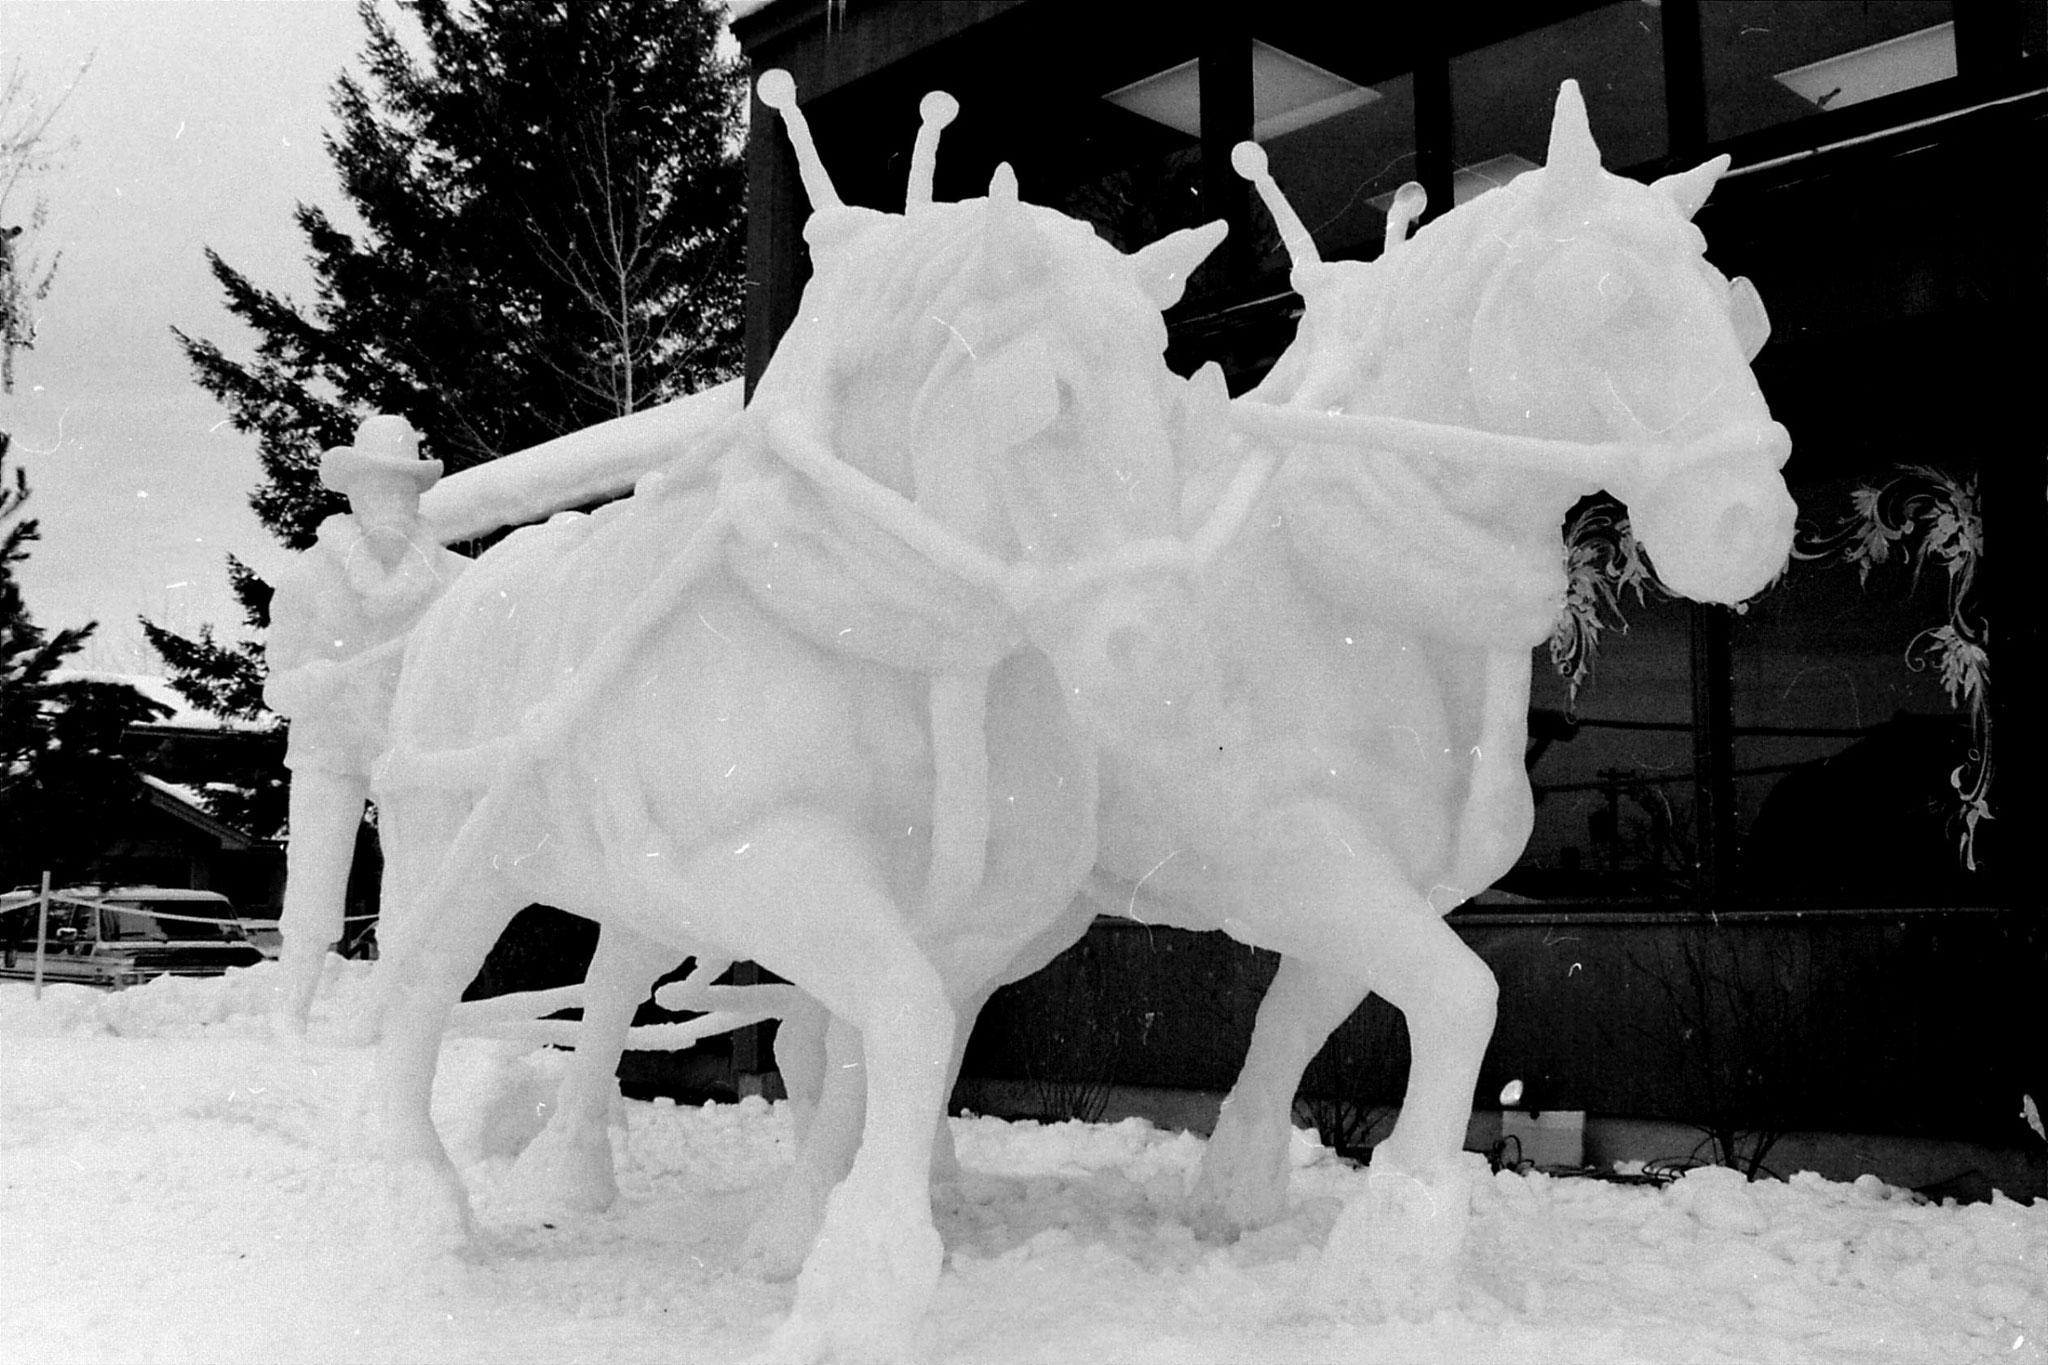 2/2/1991: 21: McCall Ice Festival